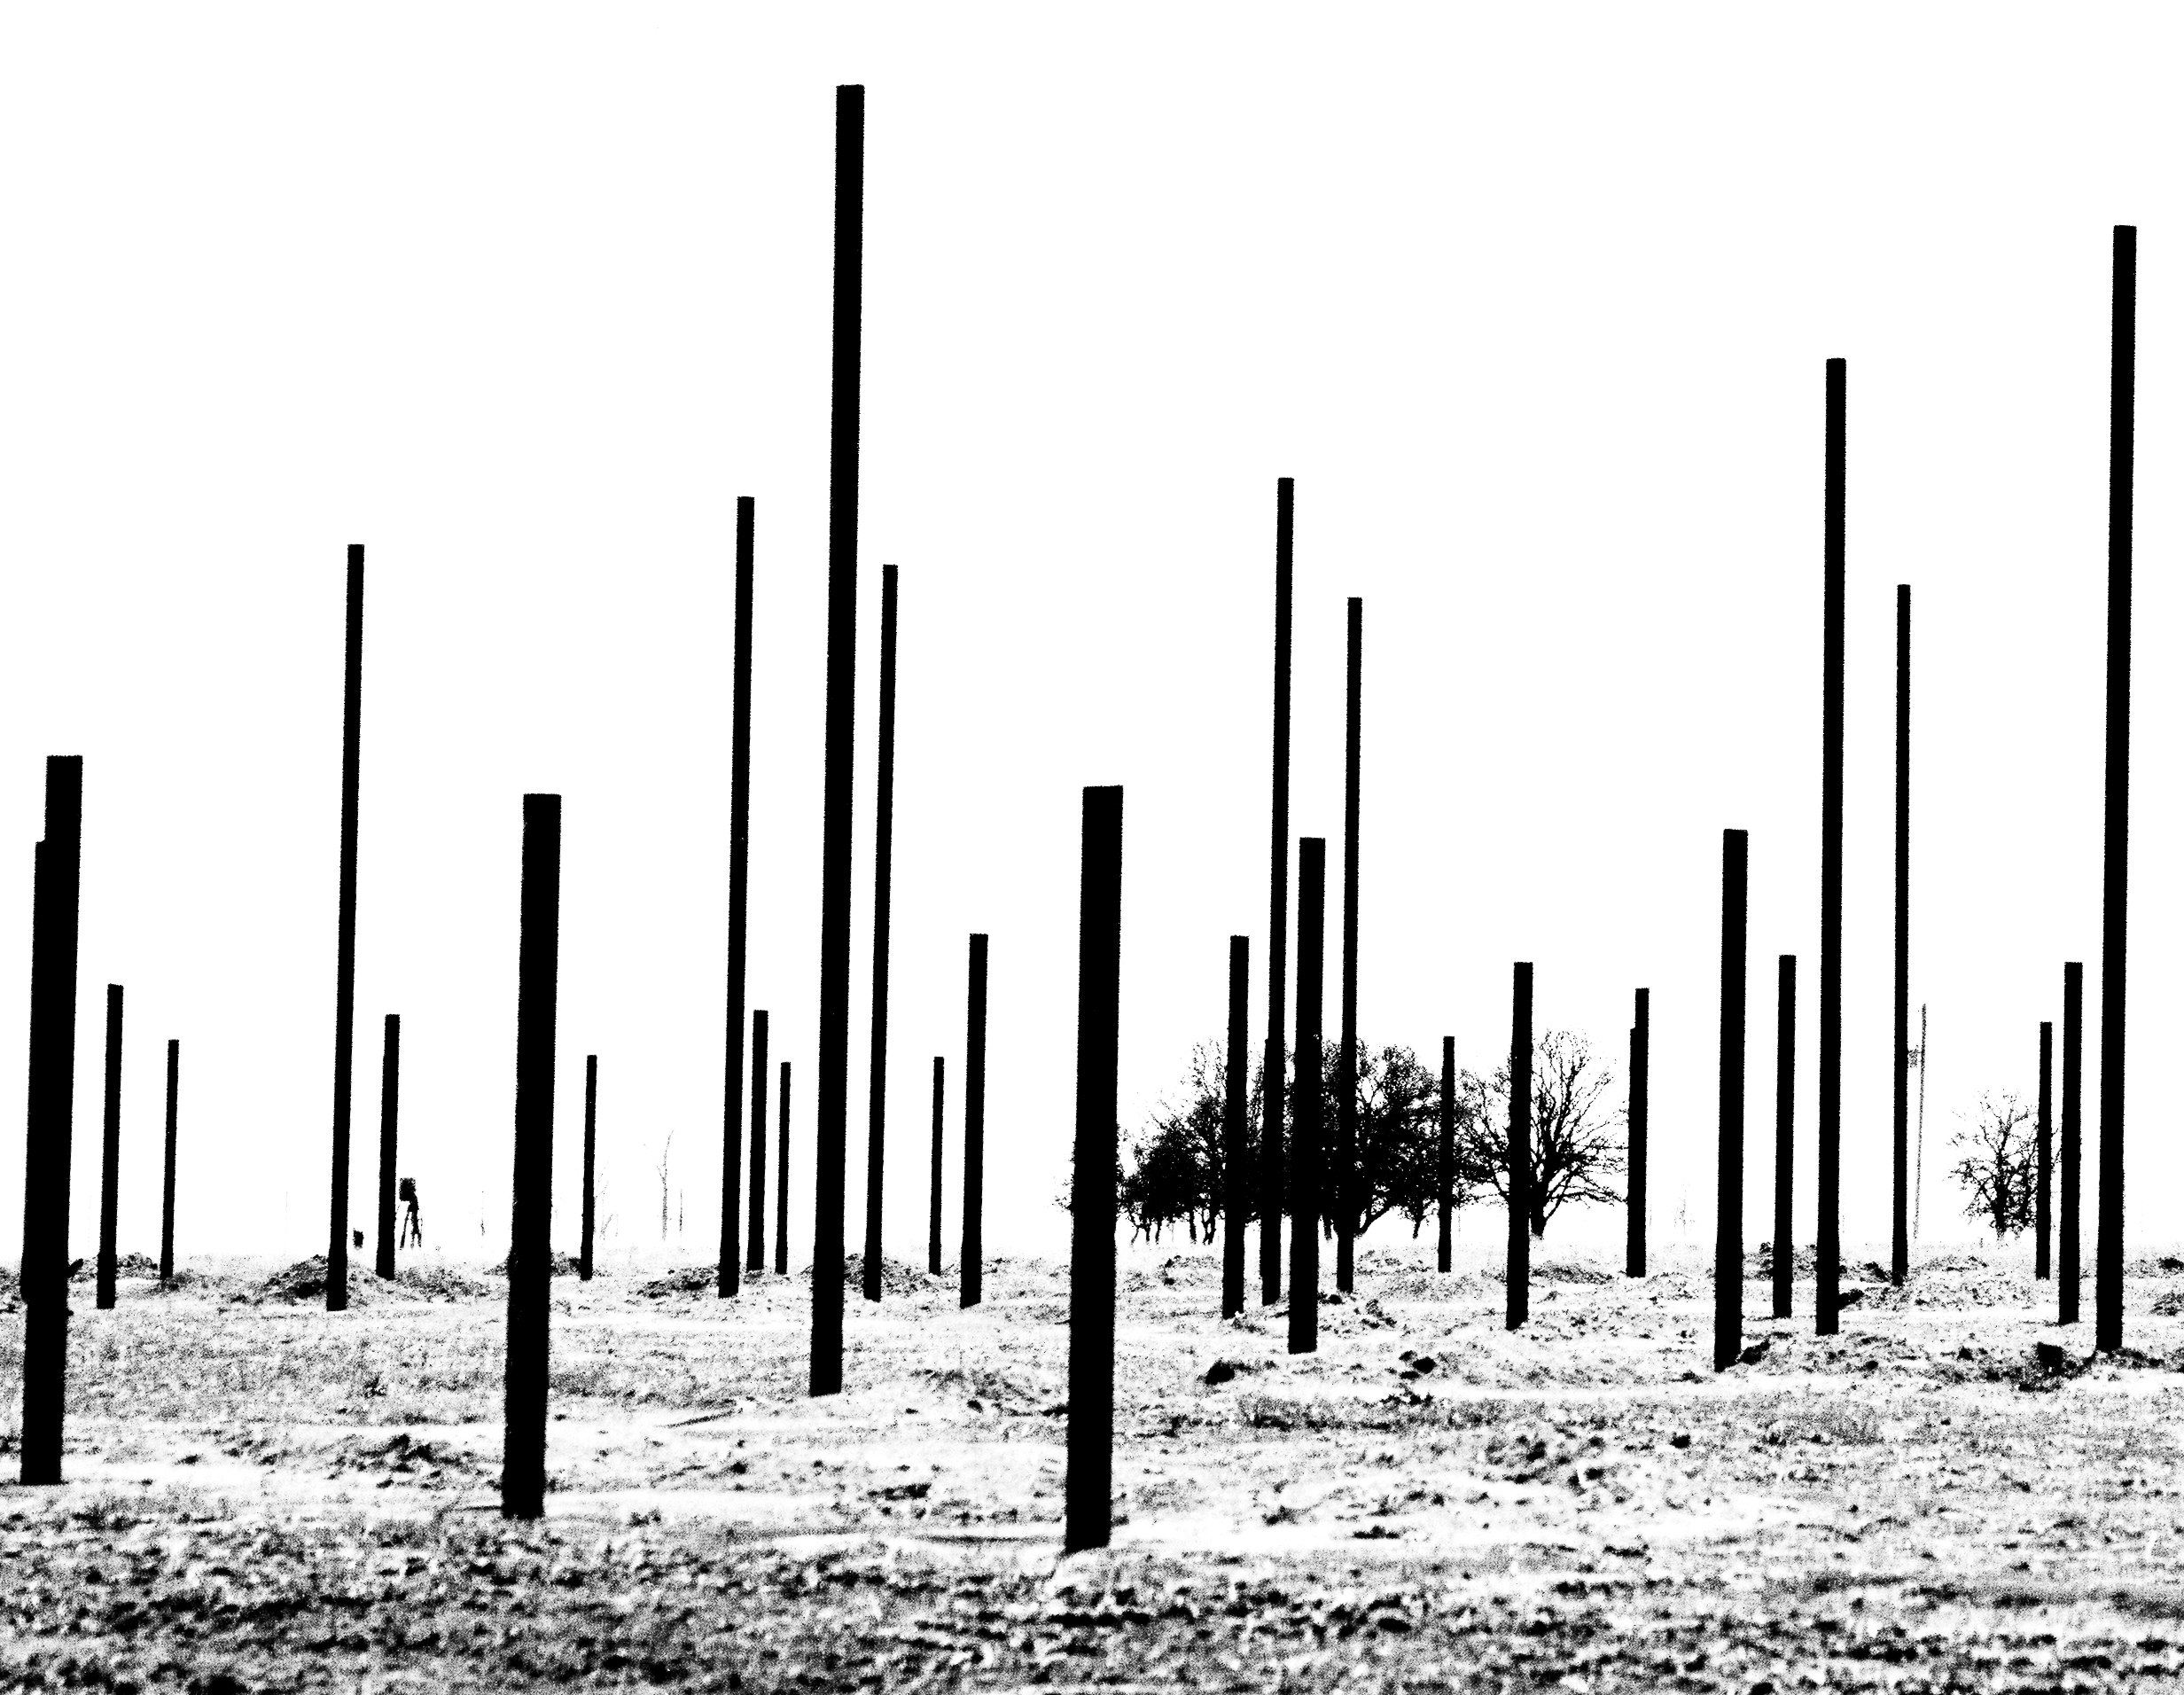 A black and white image of scrubby trees alongside large black poles sticking out from the ground